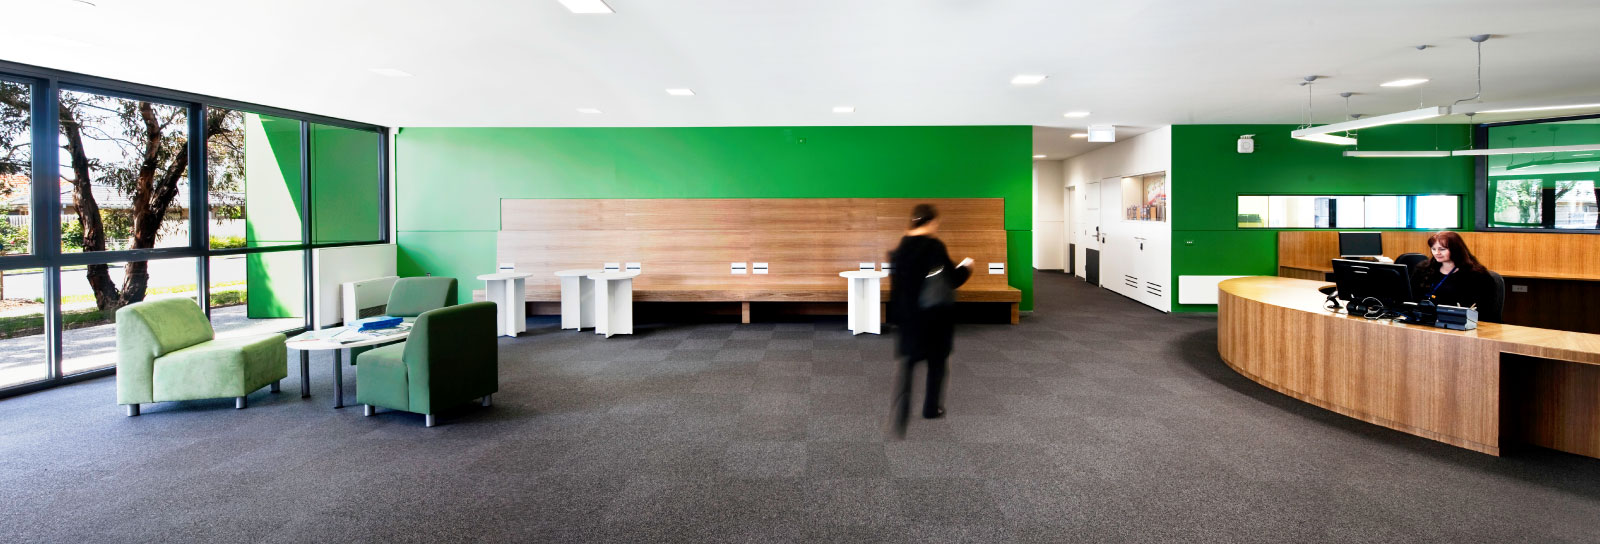 H2o Architects Melbourne-Avondale Heights Library and Learning Centre-04